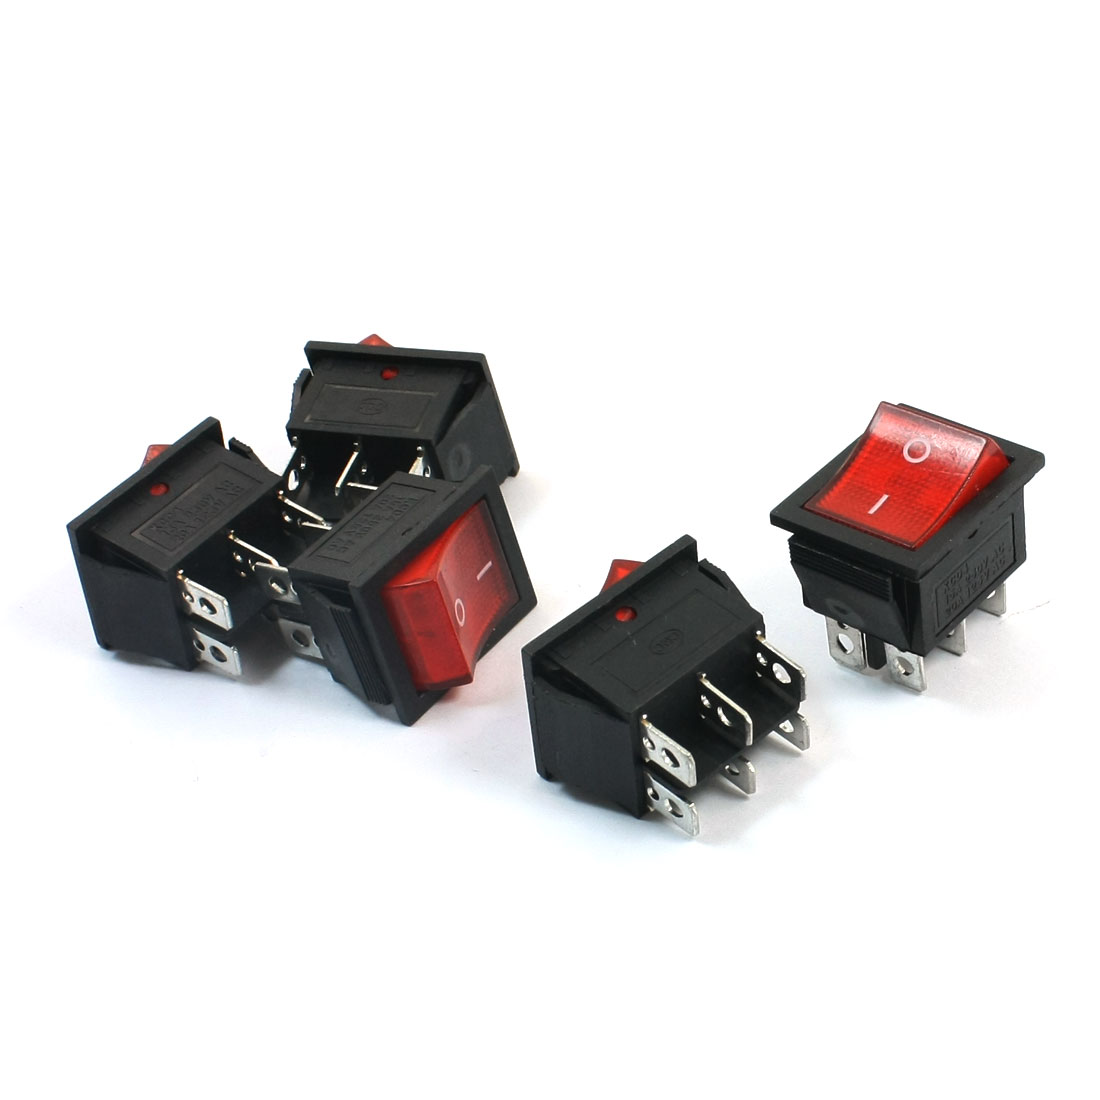 5Pcs 15A/20A AC 250V/125V 6 Terminal Locking DPDT On Off Rocker Switch